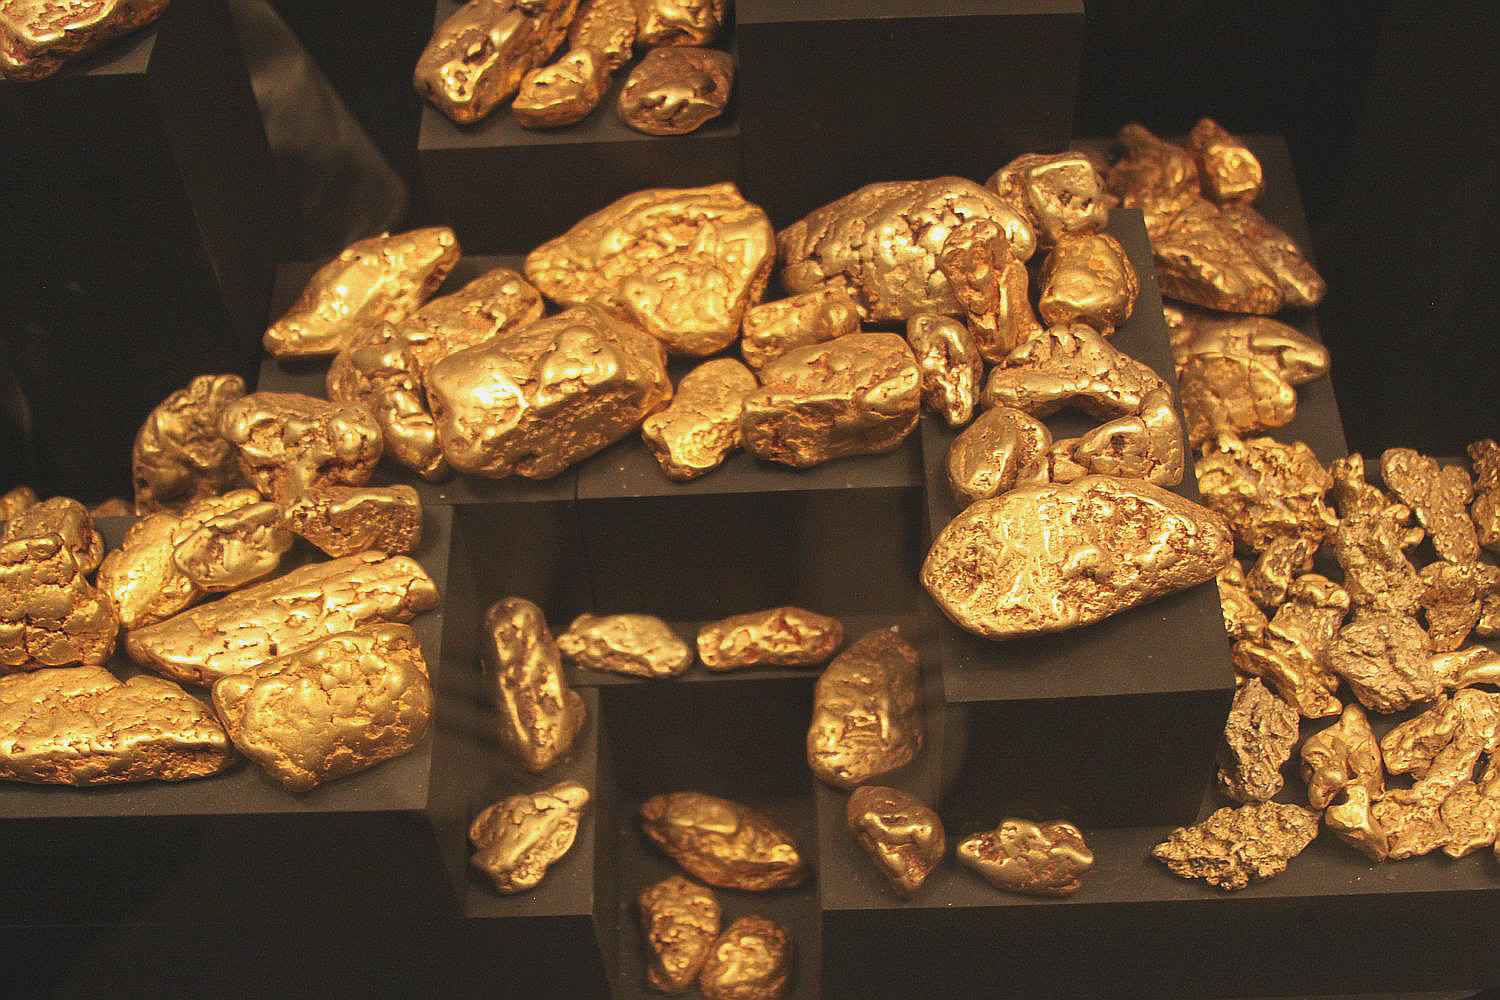 gold mining The basic processes of gold recovery introduction man has held a fascination with recovering and acquiring gold almost since the beginning of time.